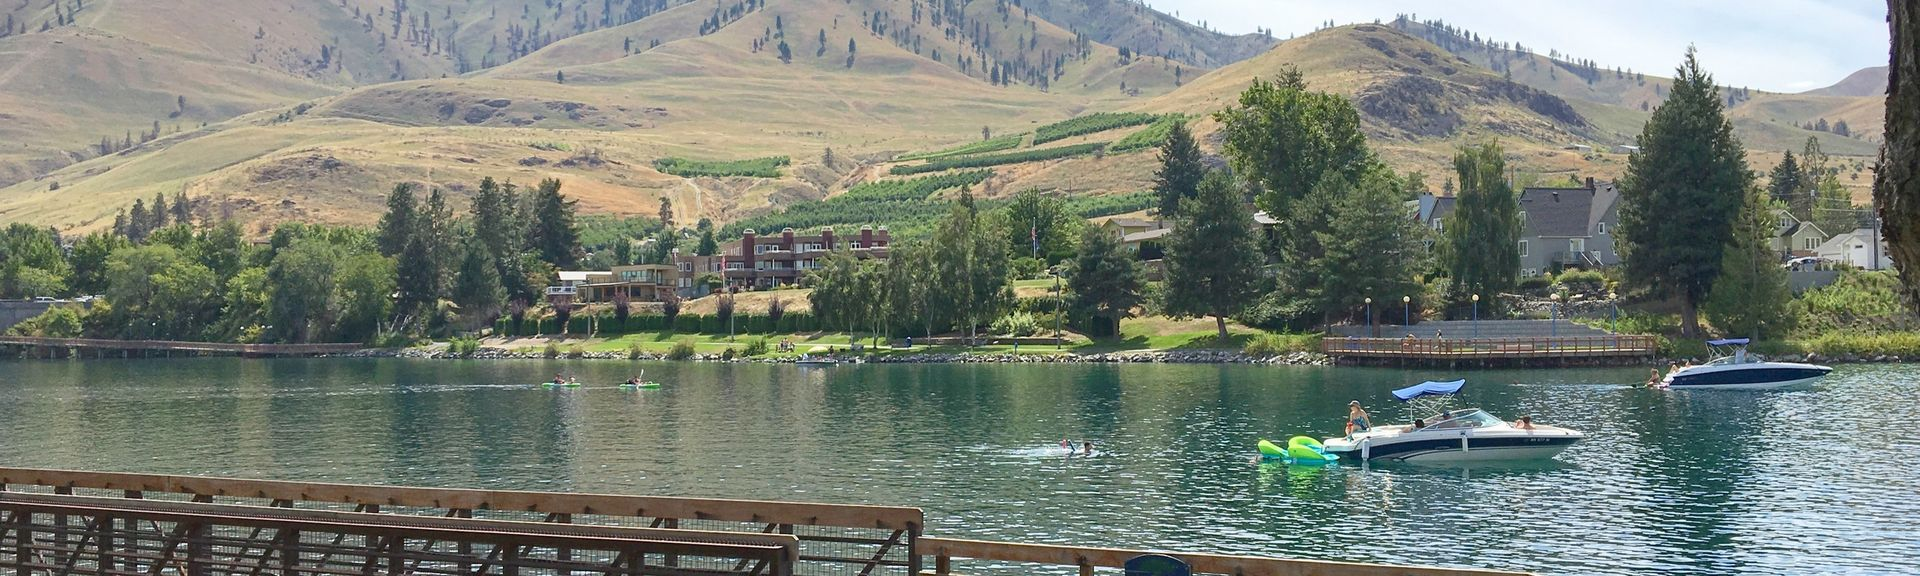 Chelan, Washington, United States of America